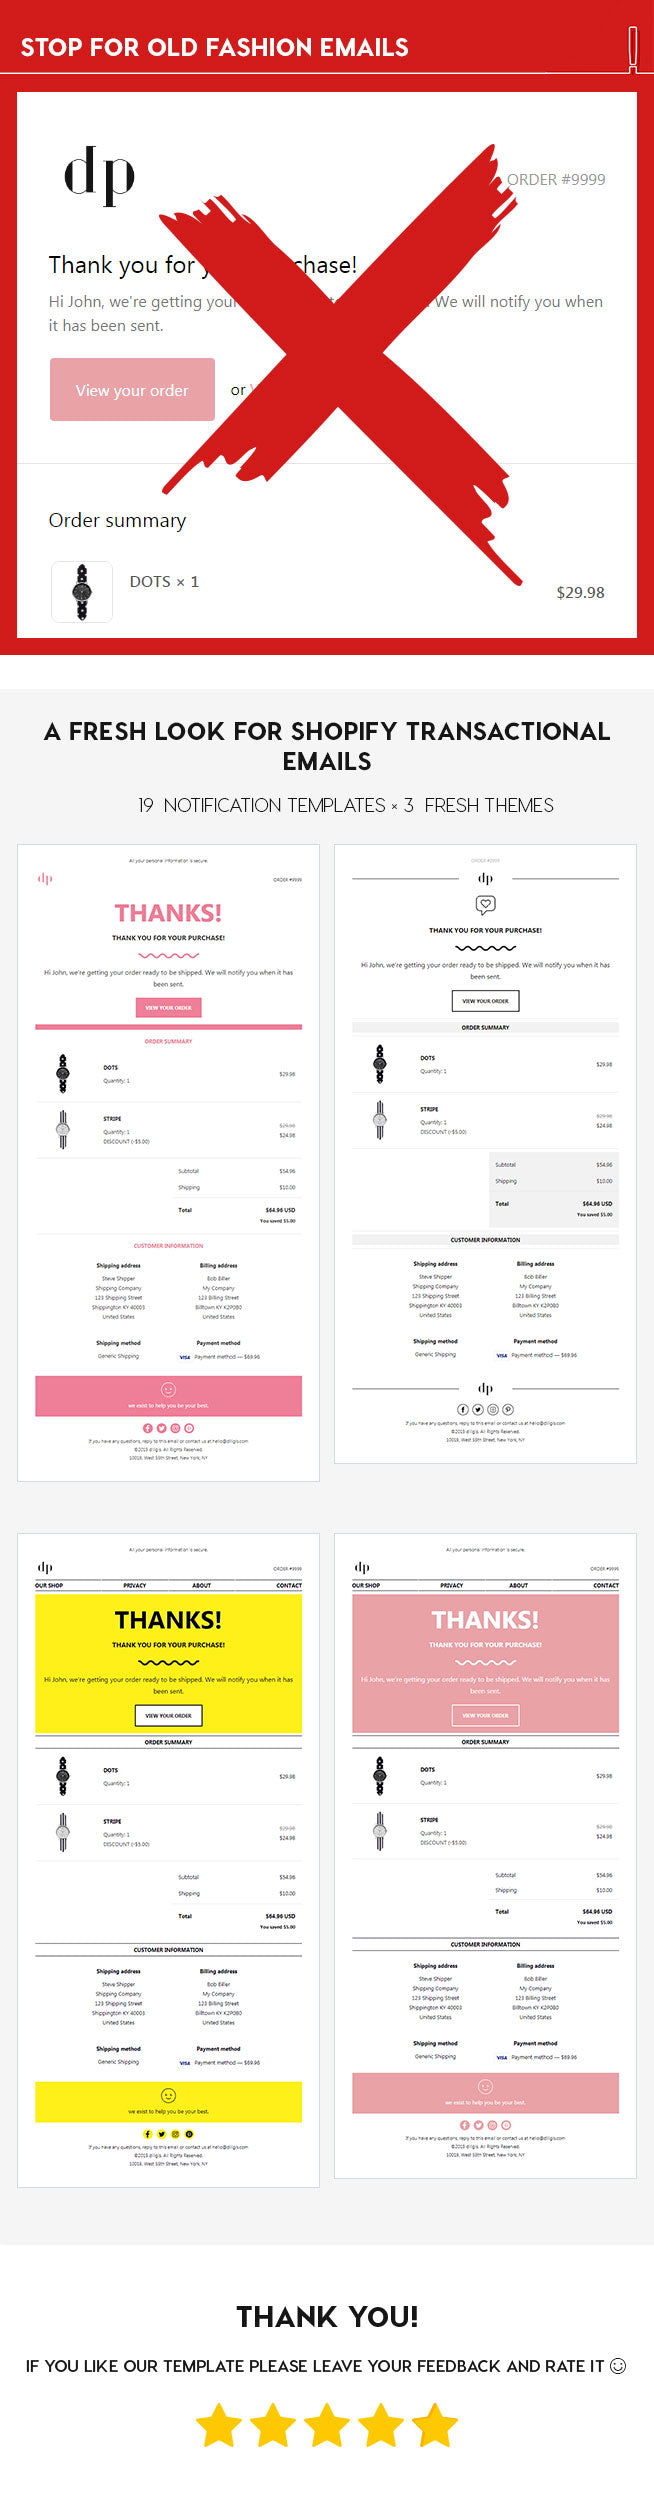 06/02/2020· shopify return policy template. Duppit Notification Email Templates For Shopify Themes By Boonite